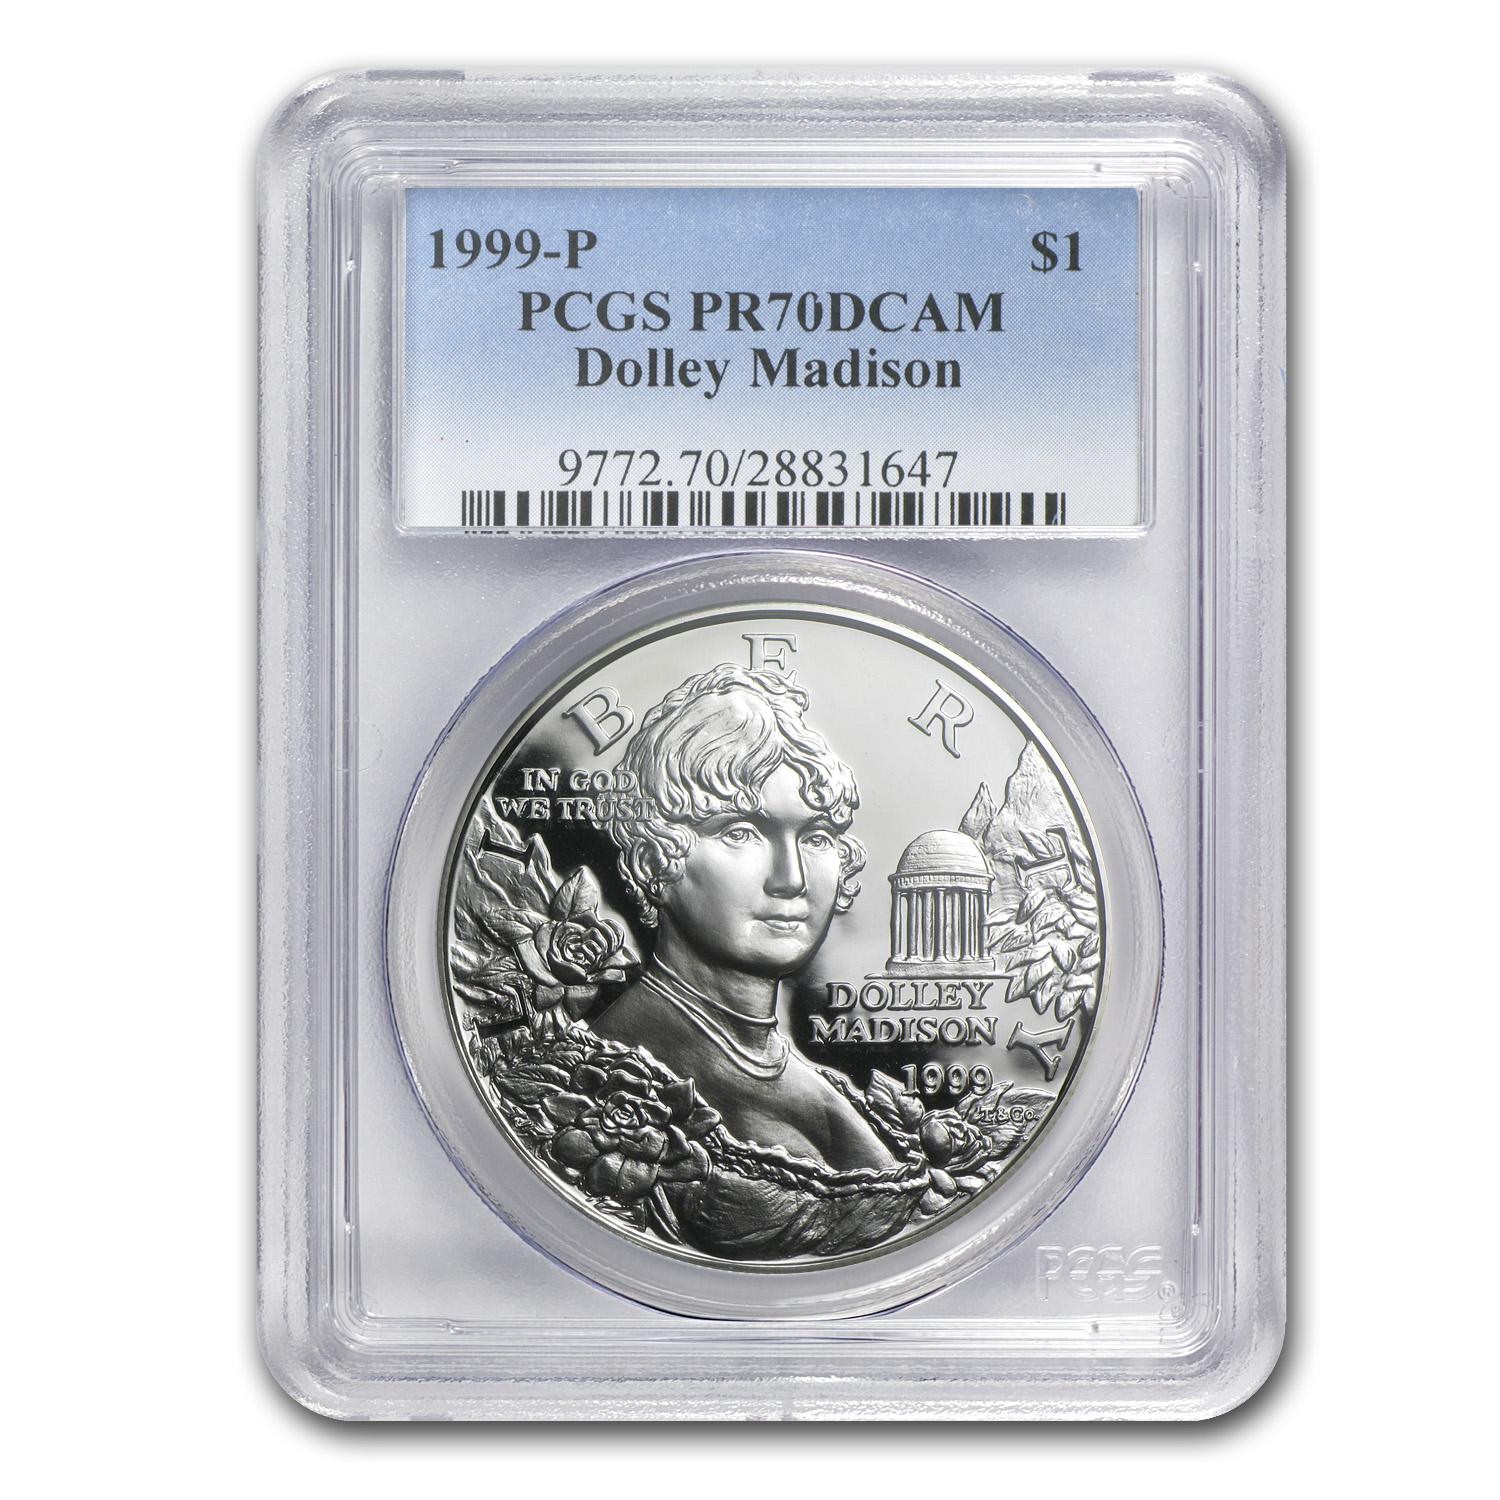 1999-P Dolley Madison $1 Silver Commem PR-70 PCGS